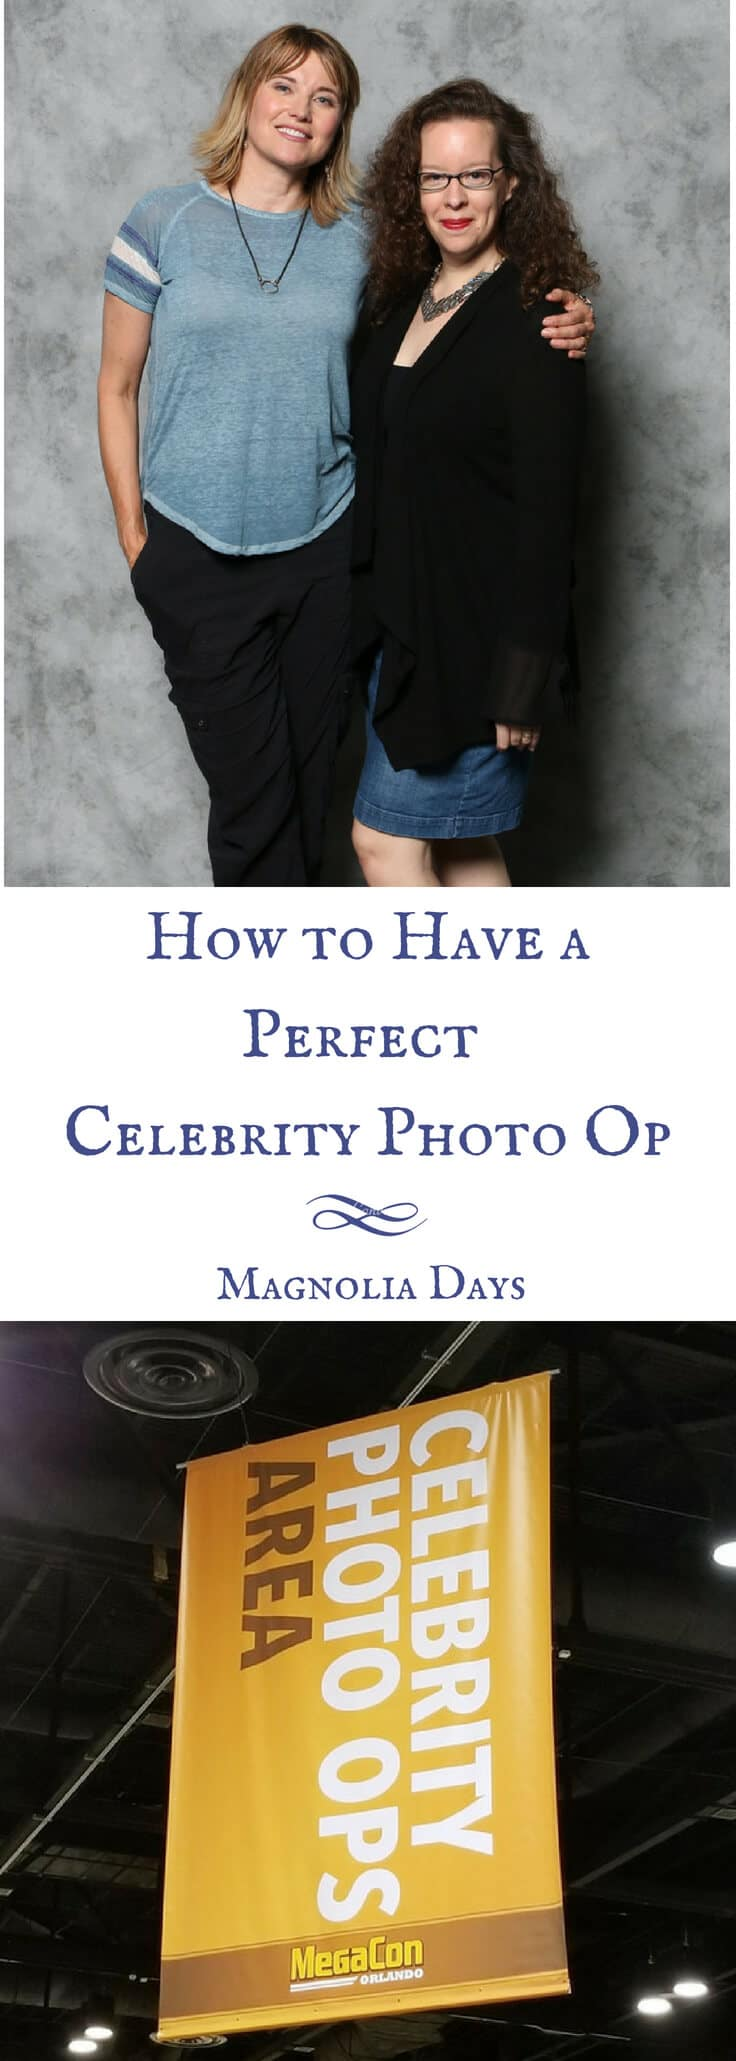 Need photo op ideas for taking a picture with your favorite celebrity? Learn everything you need to prepare for your photo op including outfit selection, posing, and what to expect from the photo op experience.